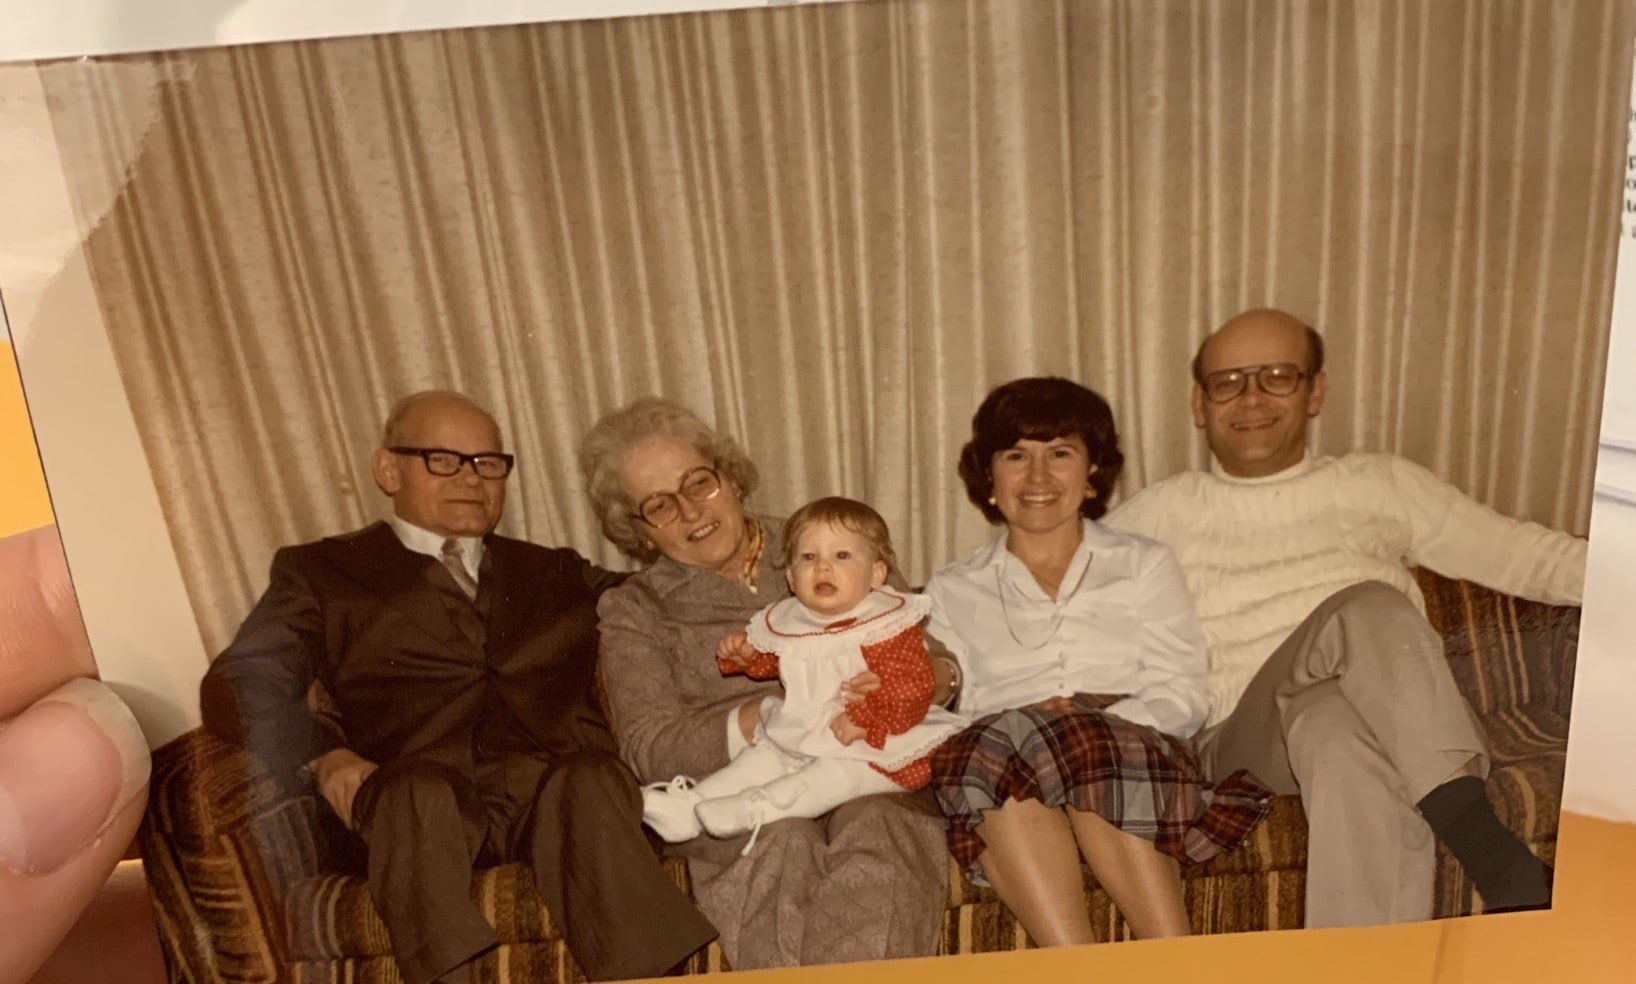 grandparents and great-grandparents